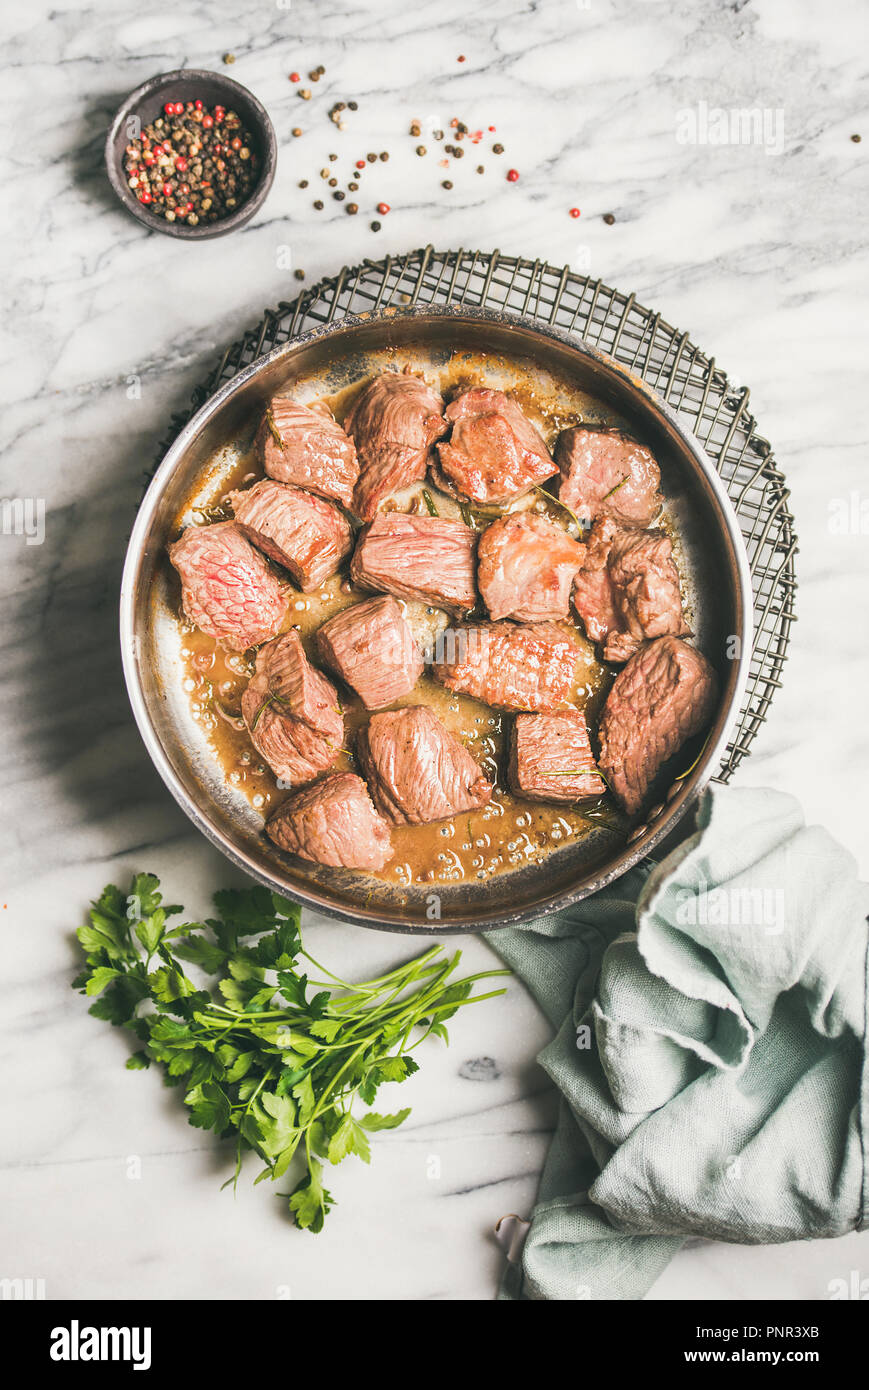 Braised beef meat stew with fresh parsley in cooking pan - Stock Image